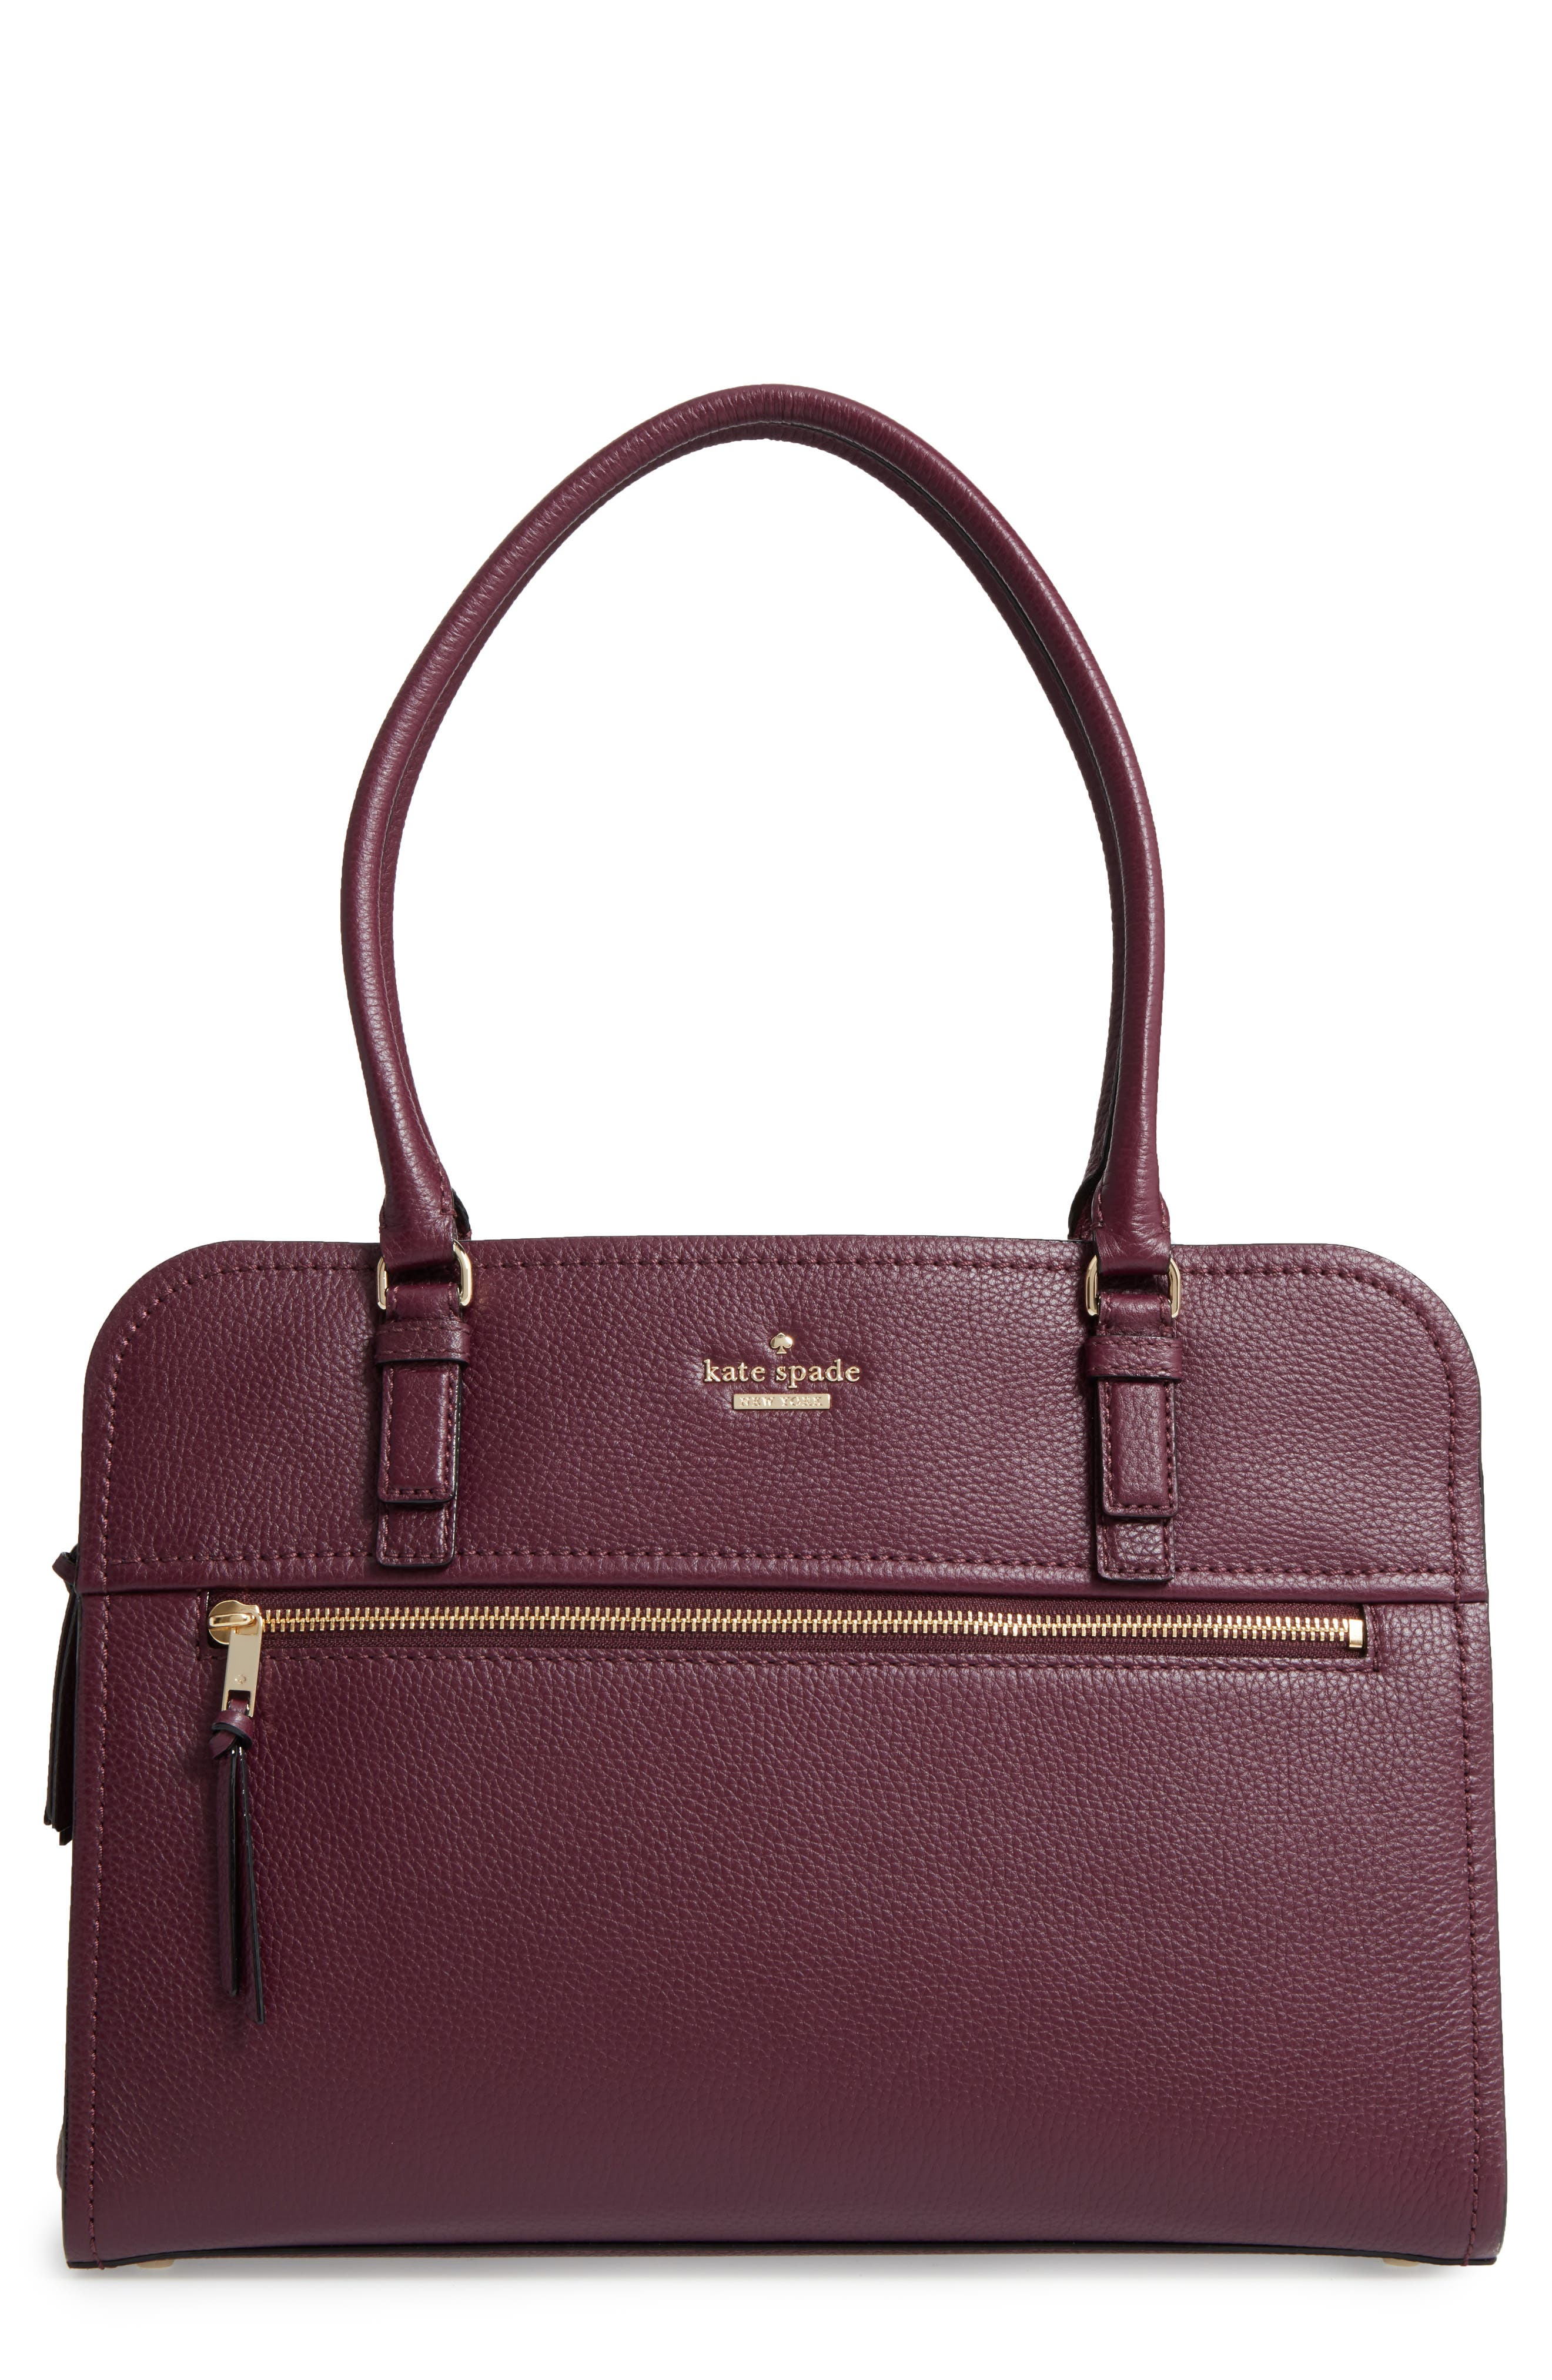 Kate Spade New York Tote Bags For Women Leather Coated Canvas